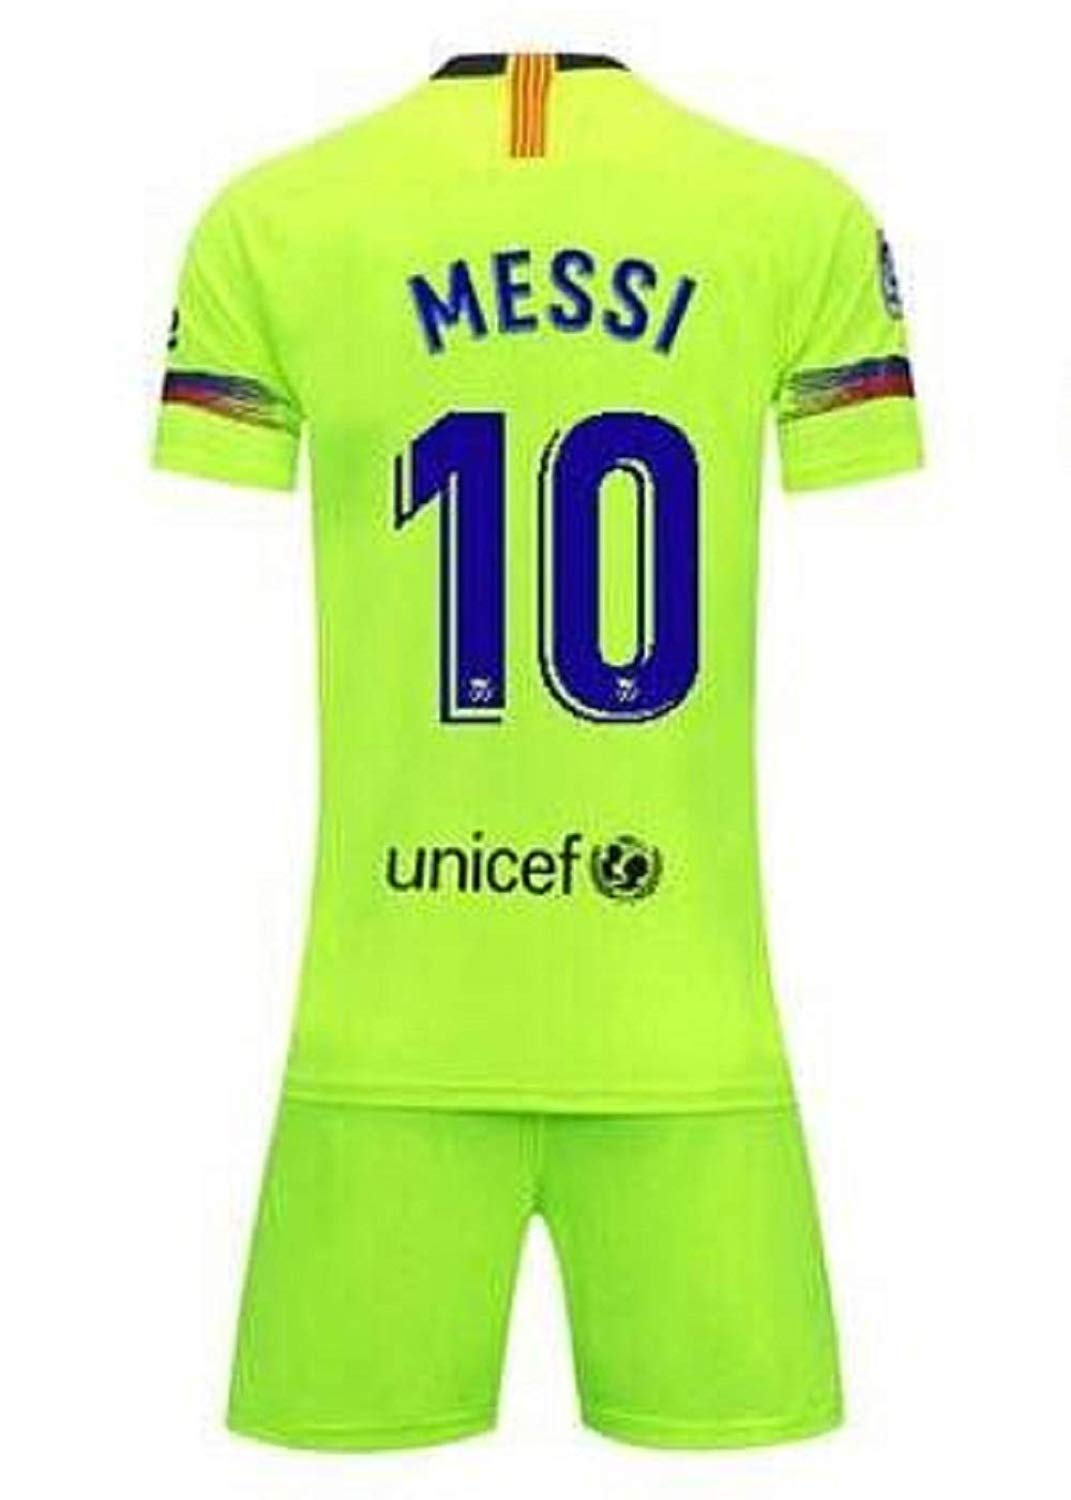 e5143f07e Get Quotations · Lakivde Kids Messi New Away Jerseys 18-19 Barcelona  10  Football Jersey Soccer Jersey